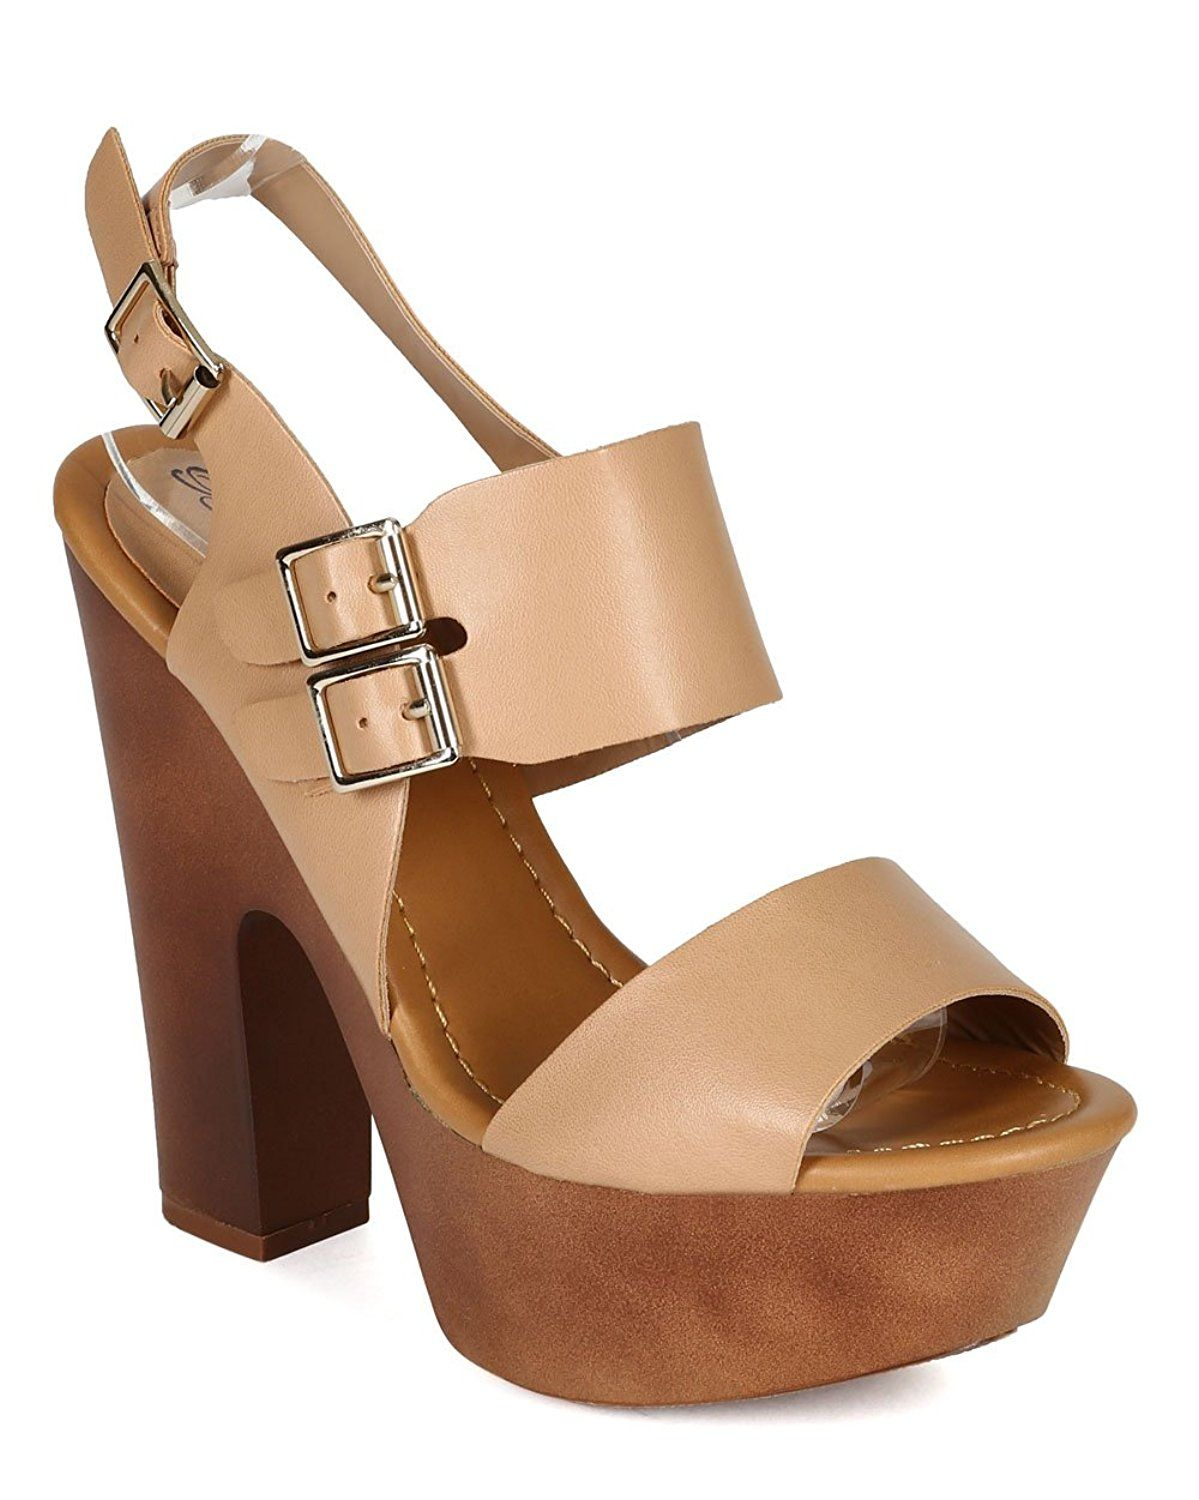 62a2f4e05b4 Breckelles CB81 Women Leatherette Open Toe Double Band Slingback Chunky  Heel Platform Sandal - Natural    Details can be found   Sandals